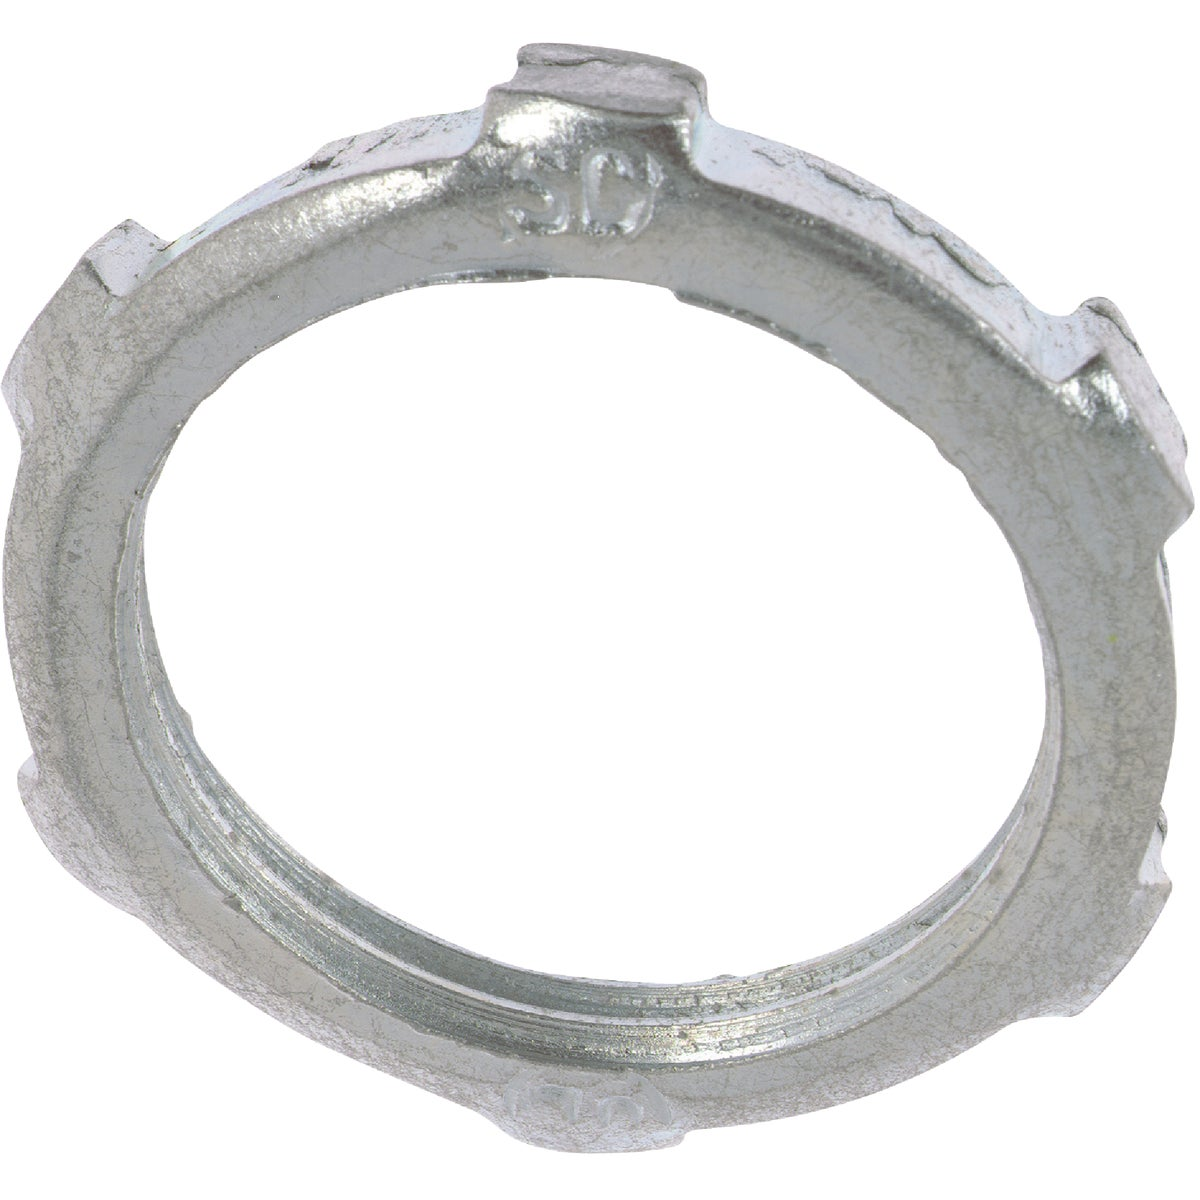 "5PK 3/4"" LOCKNUT - LN102M5 by Thomas & Betts"